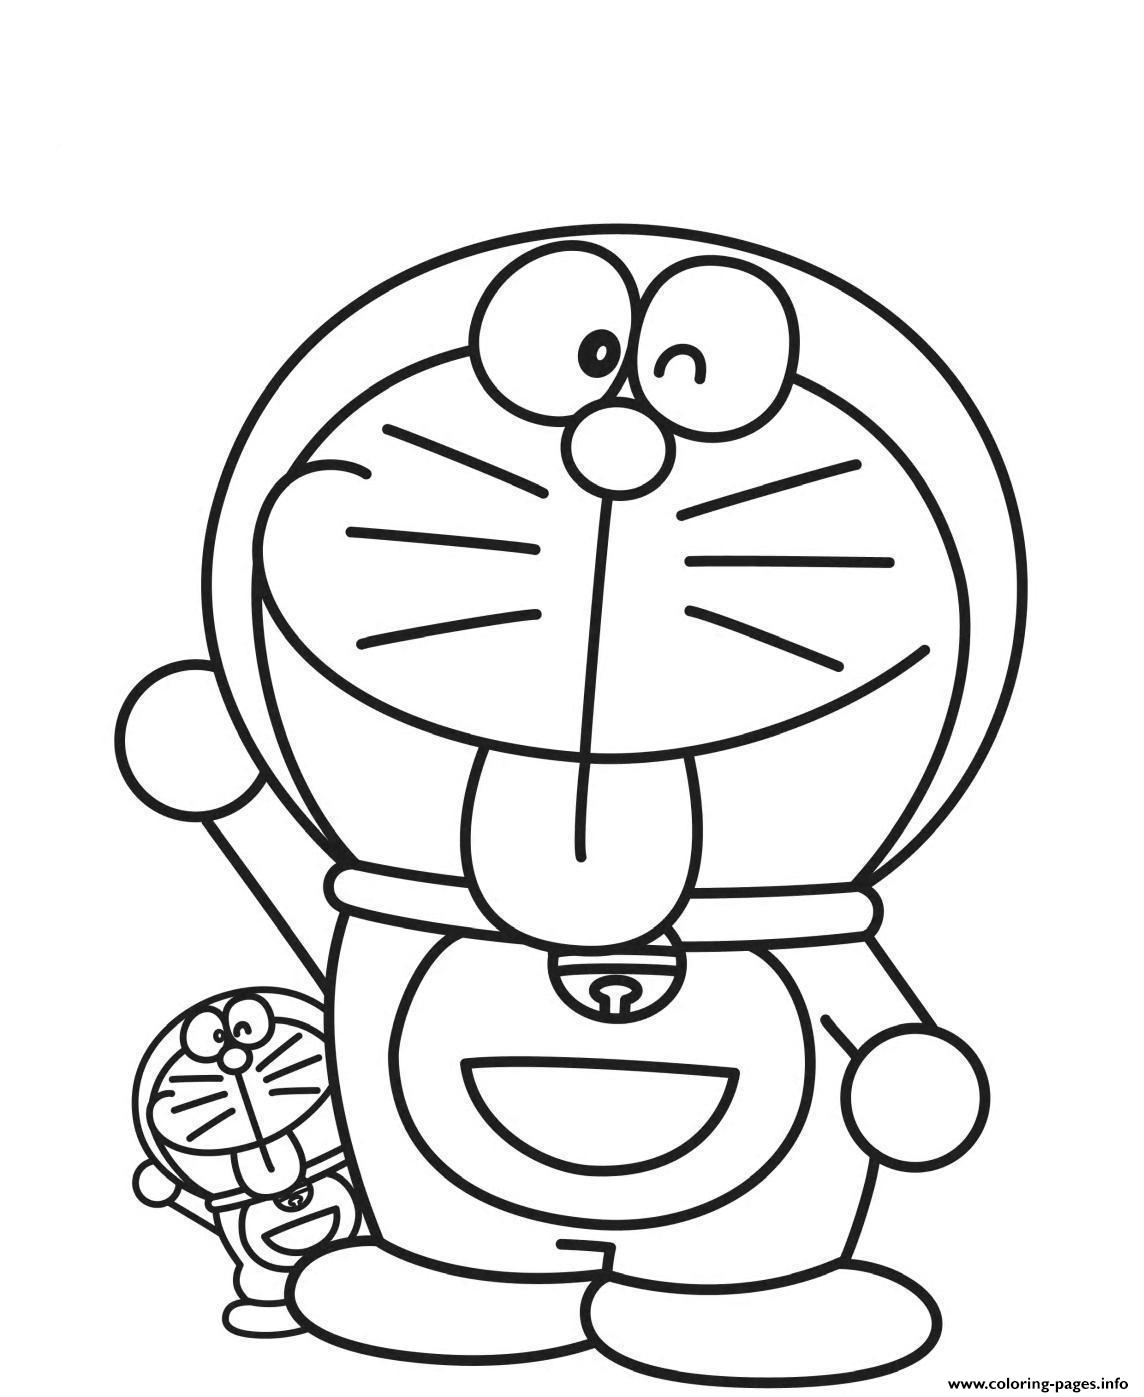 Big and litte doraemon cartoon s615a coloring pages printable